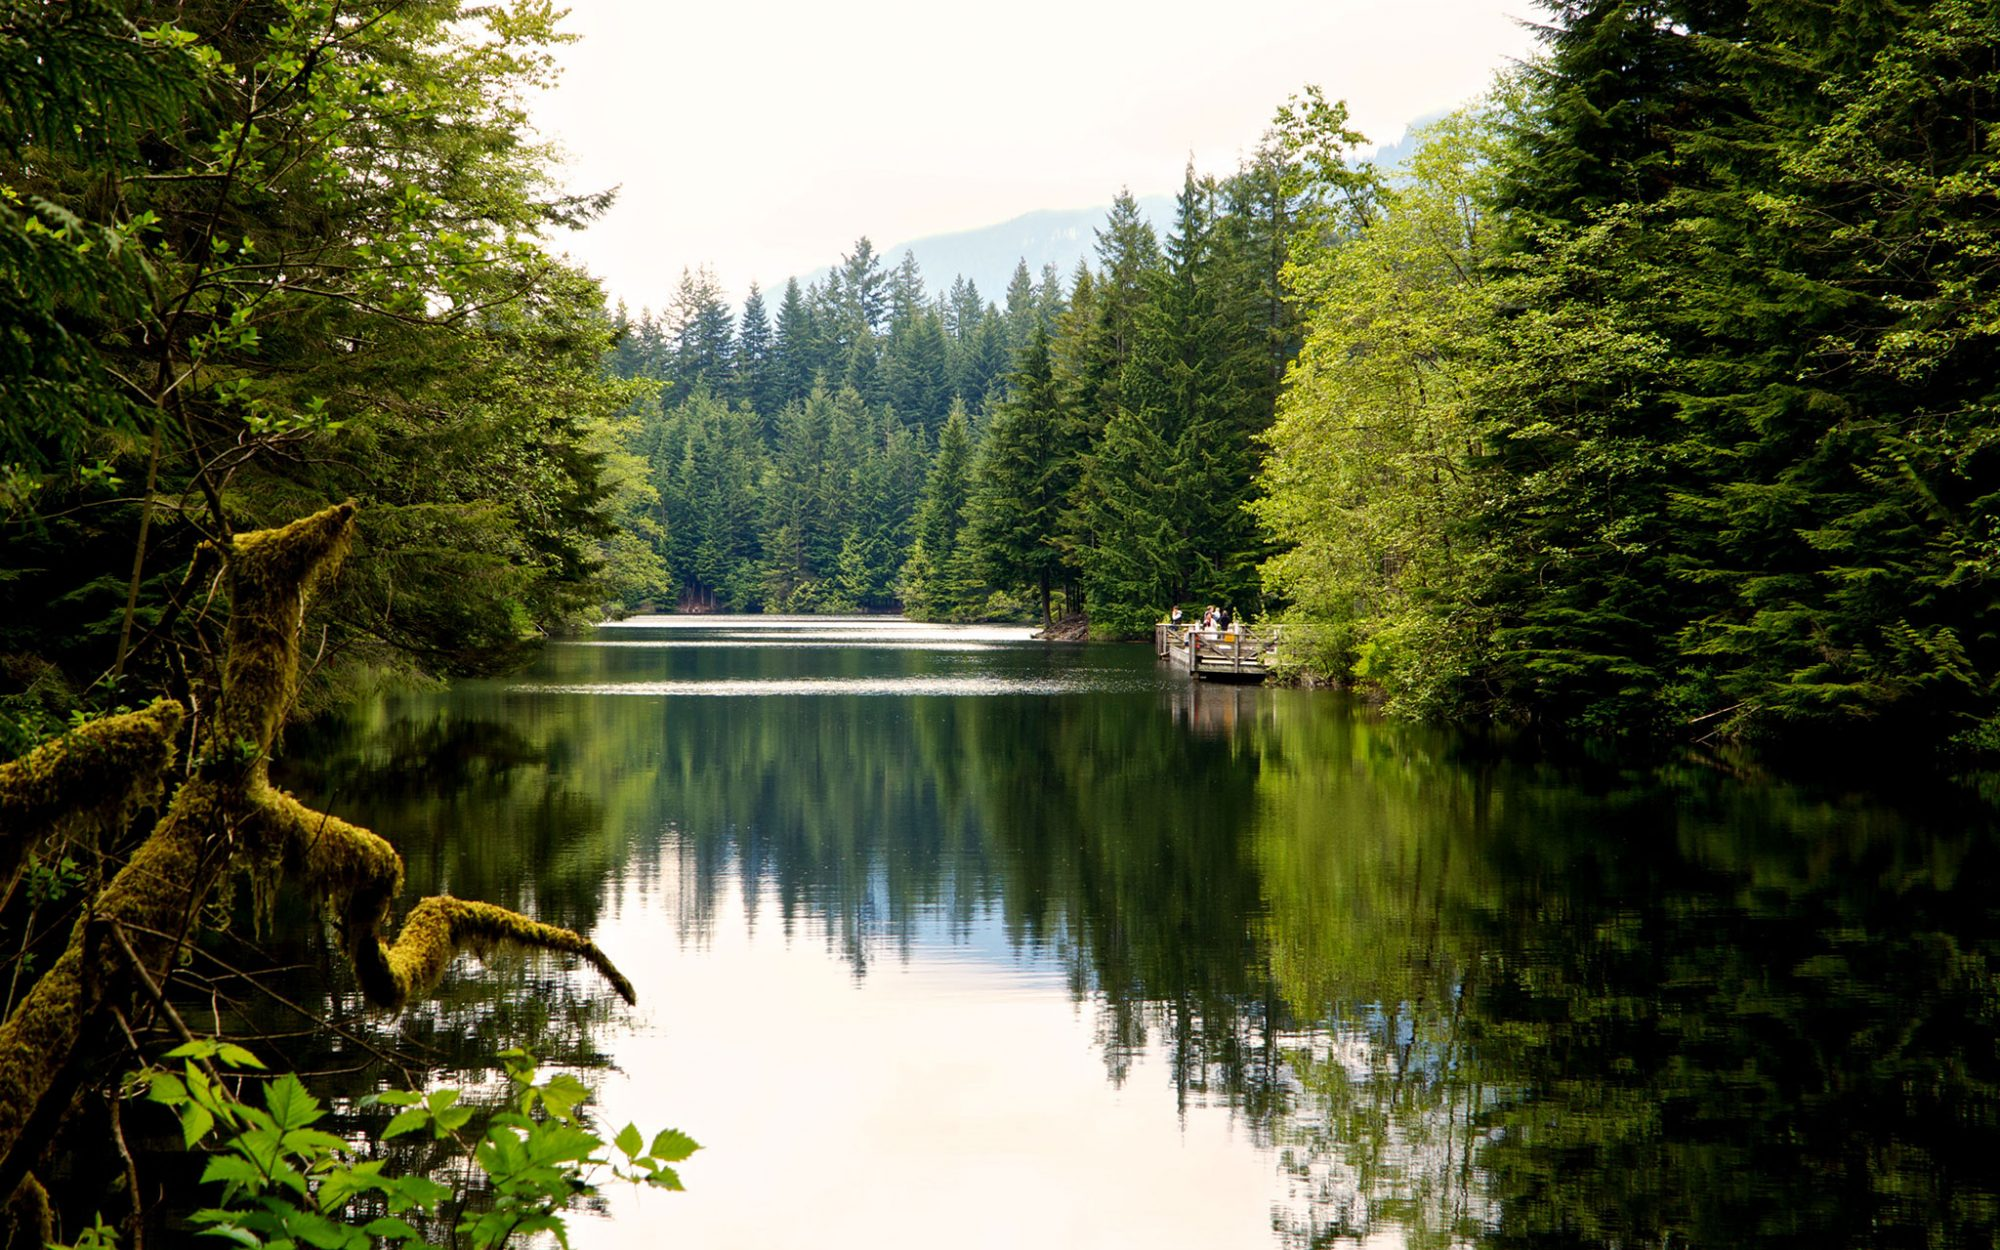 Every X-Files Forest Scene Was Shot in the Same Vancouver Park